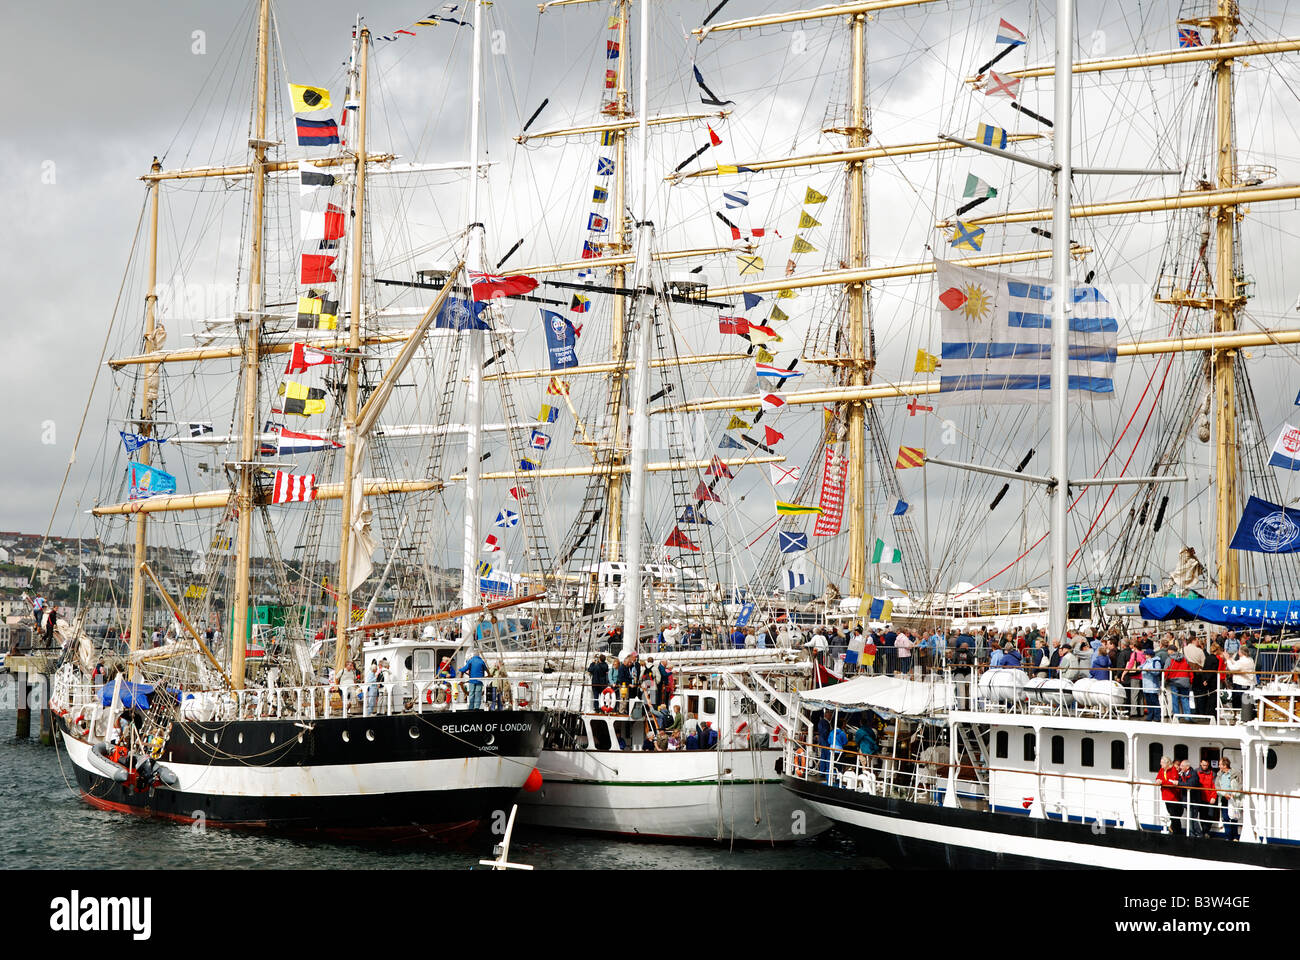 tall ships in falmouth harbour,cornwall,uk prior to the 'funchal 500 tall ships regatta' - Stock Image